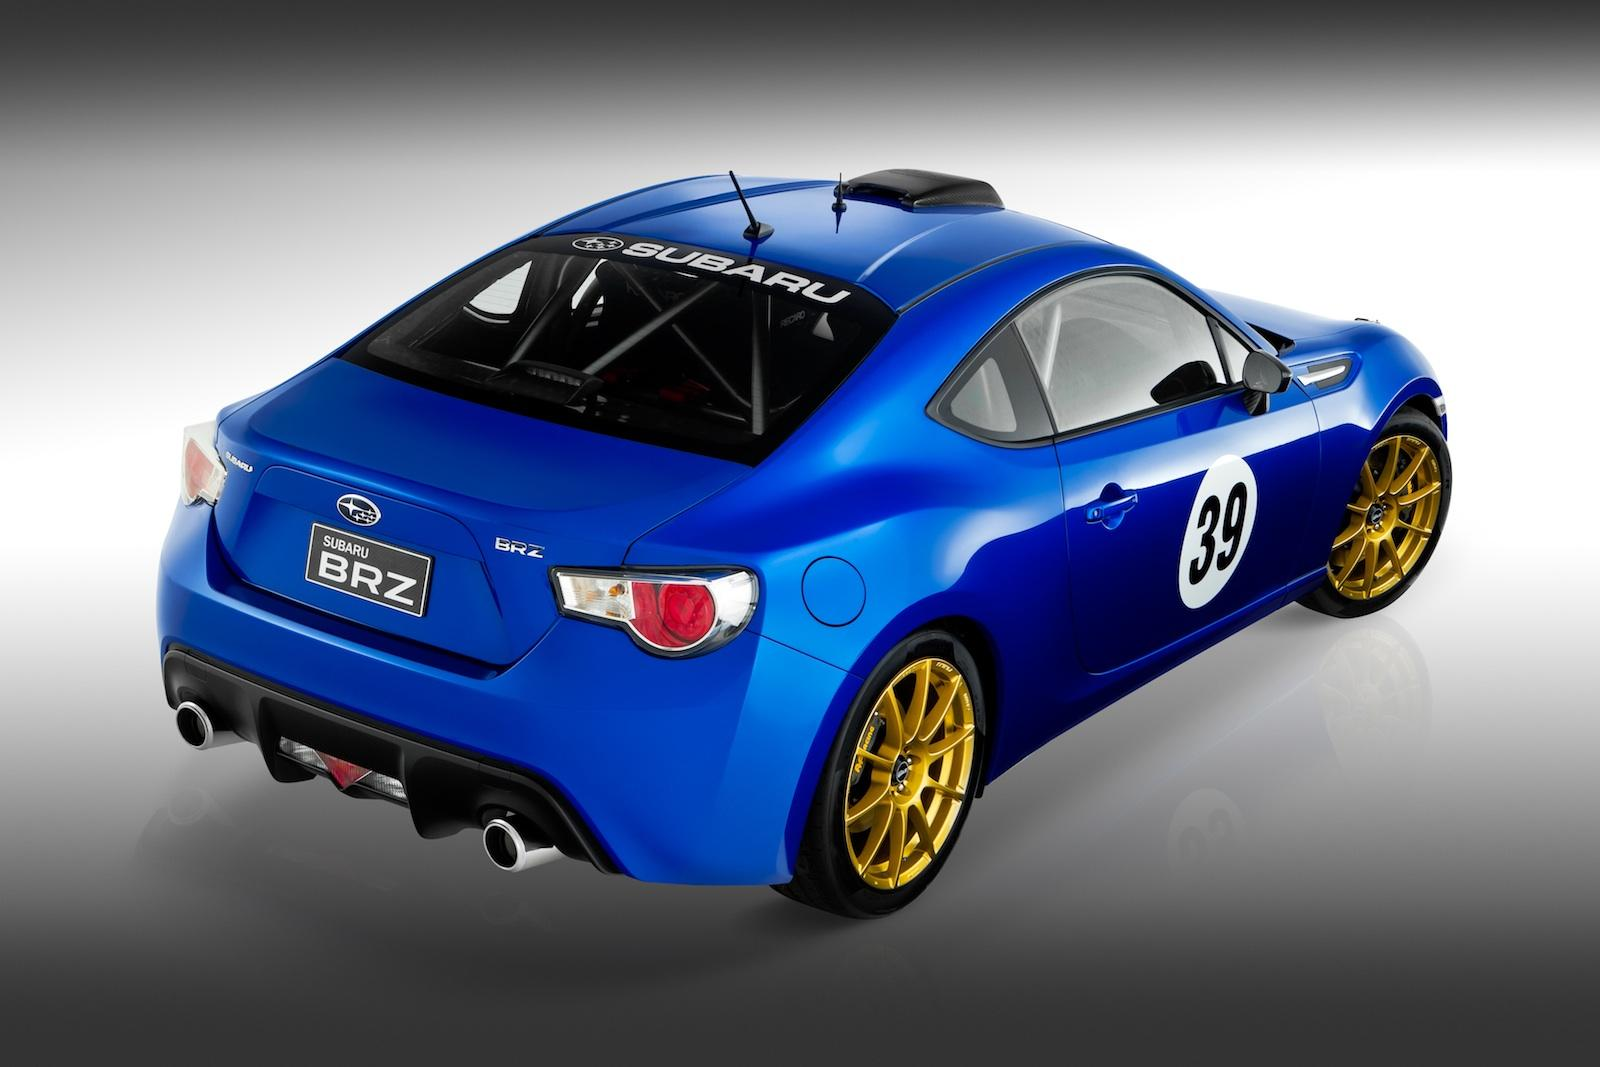 photo description and details subaru brz by pbms from story subaru brz